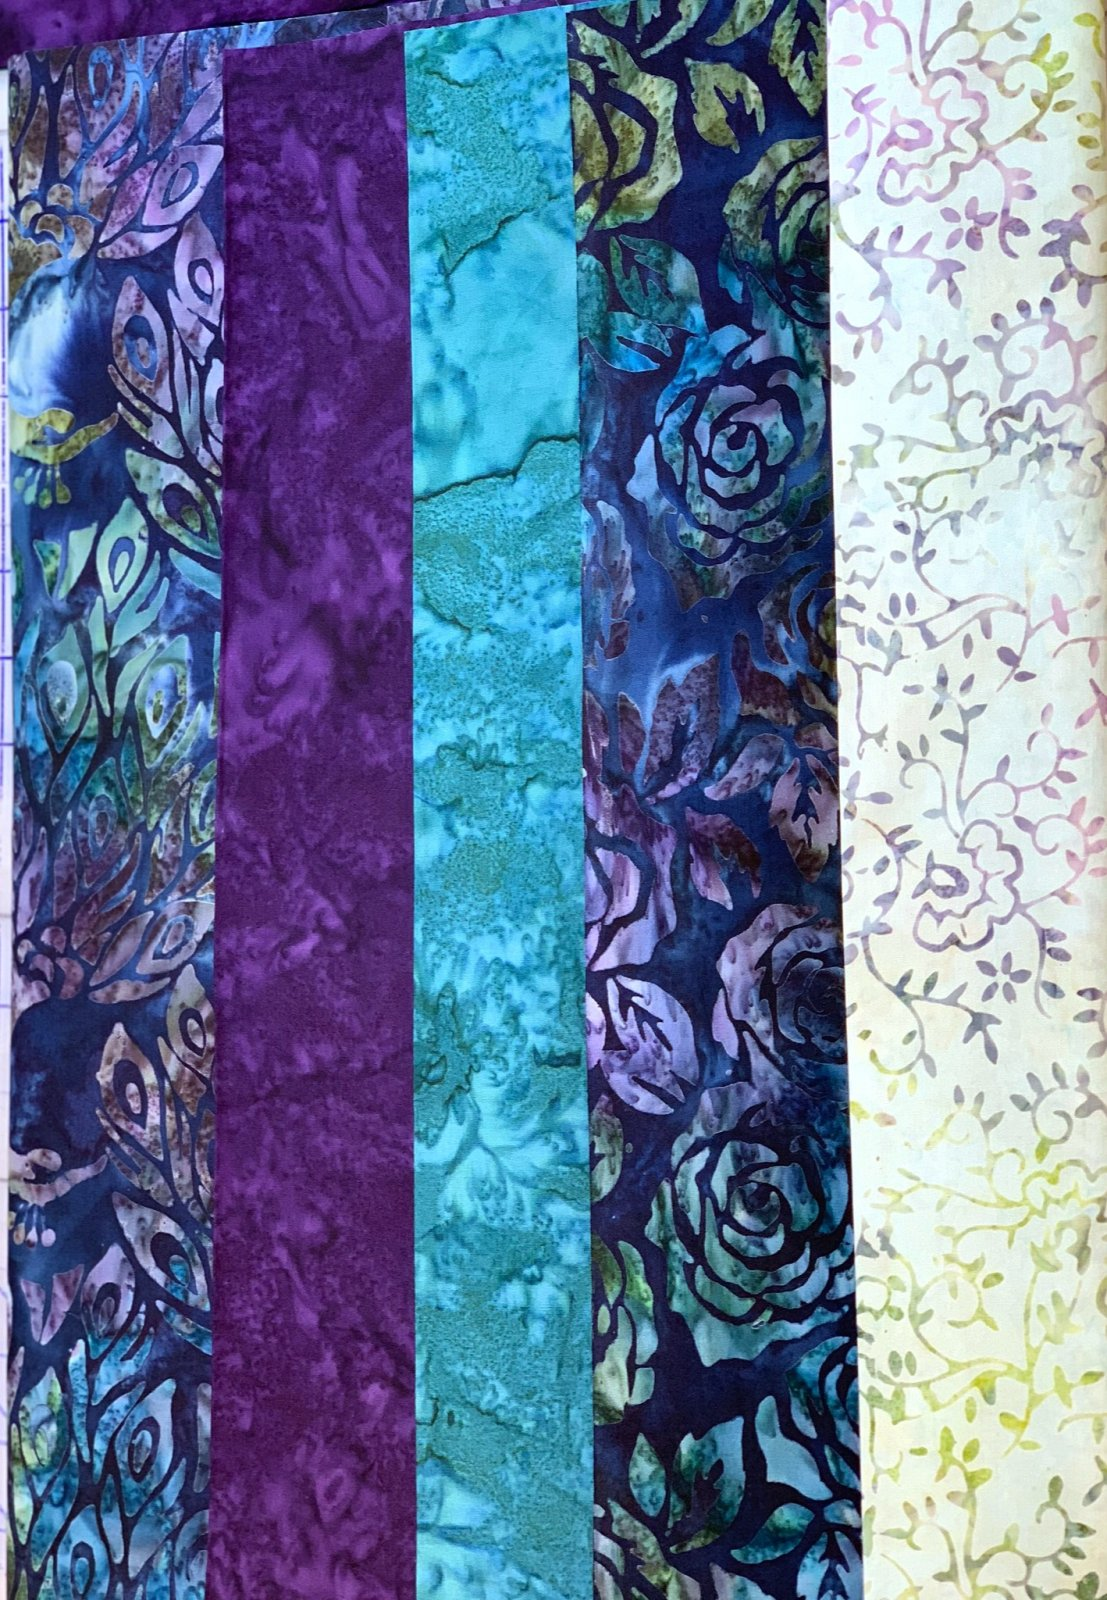 5 Yard Quilt Kit - Fancy Feathers